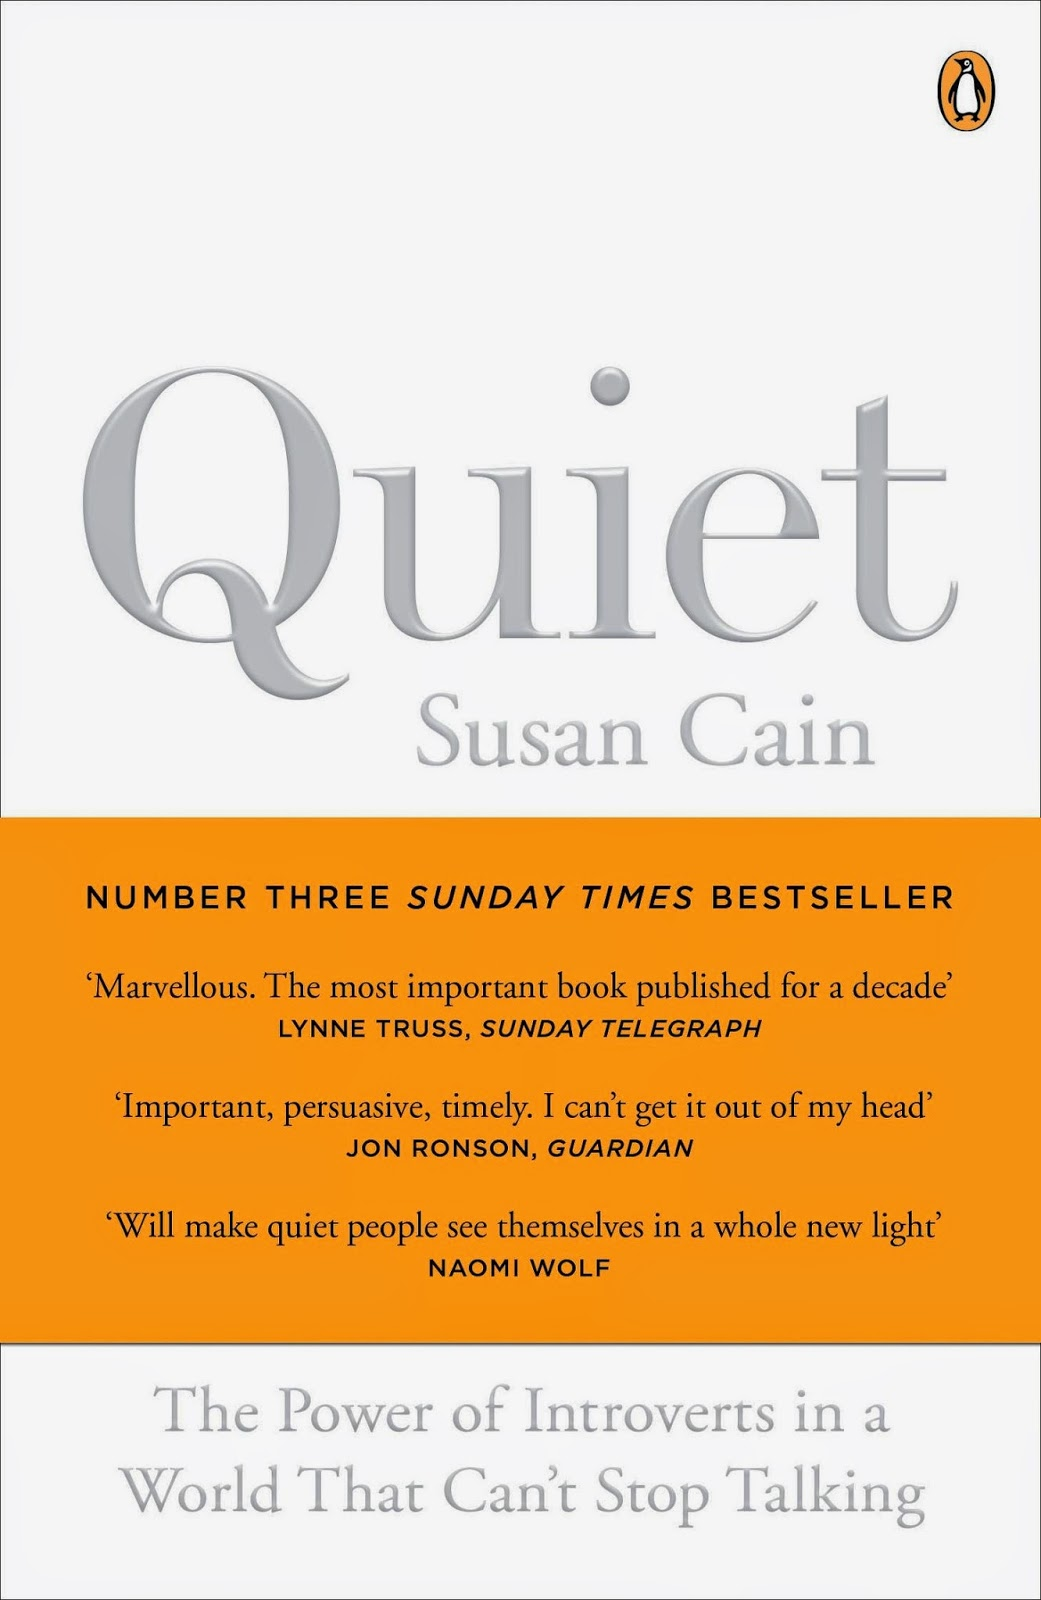 Quiet by Susan Cain - social anxiety and introversion